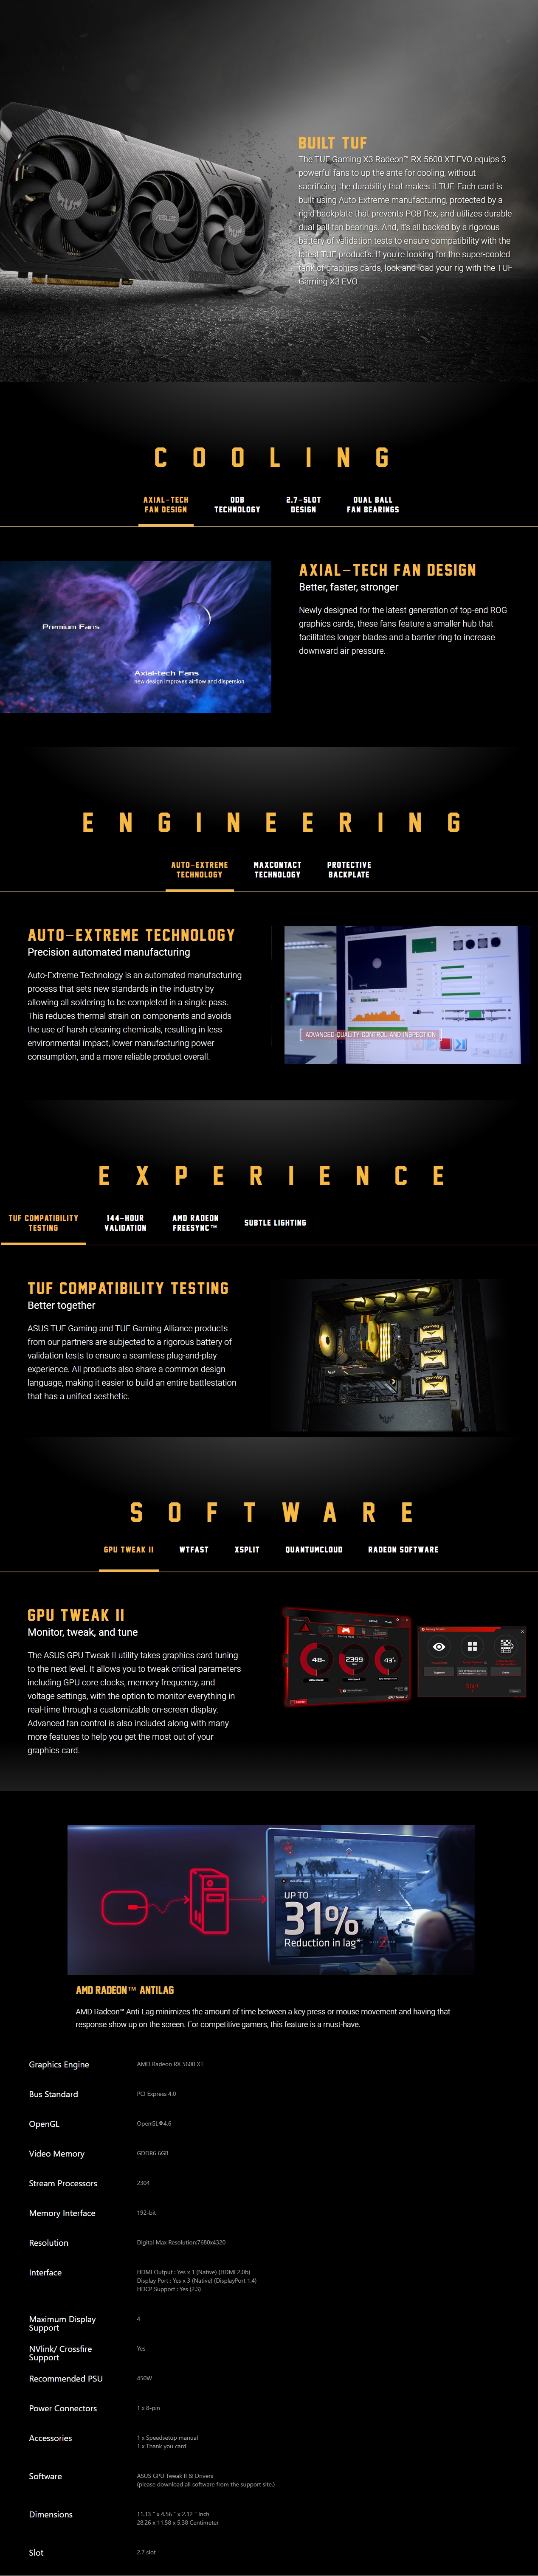 A large marketing image providing additional information about the product ASUS Radeon RX 5600 XT TUF Gaming X3 EVO 6GB GDDR6 - Additional alt info not provided